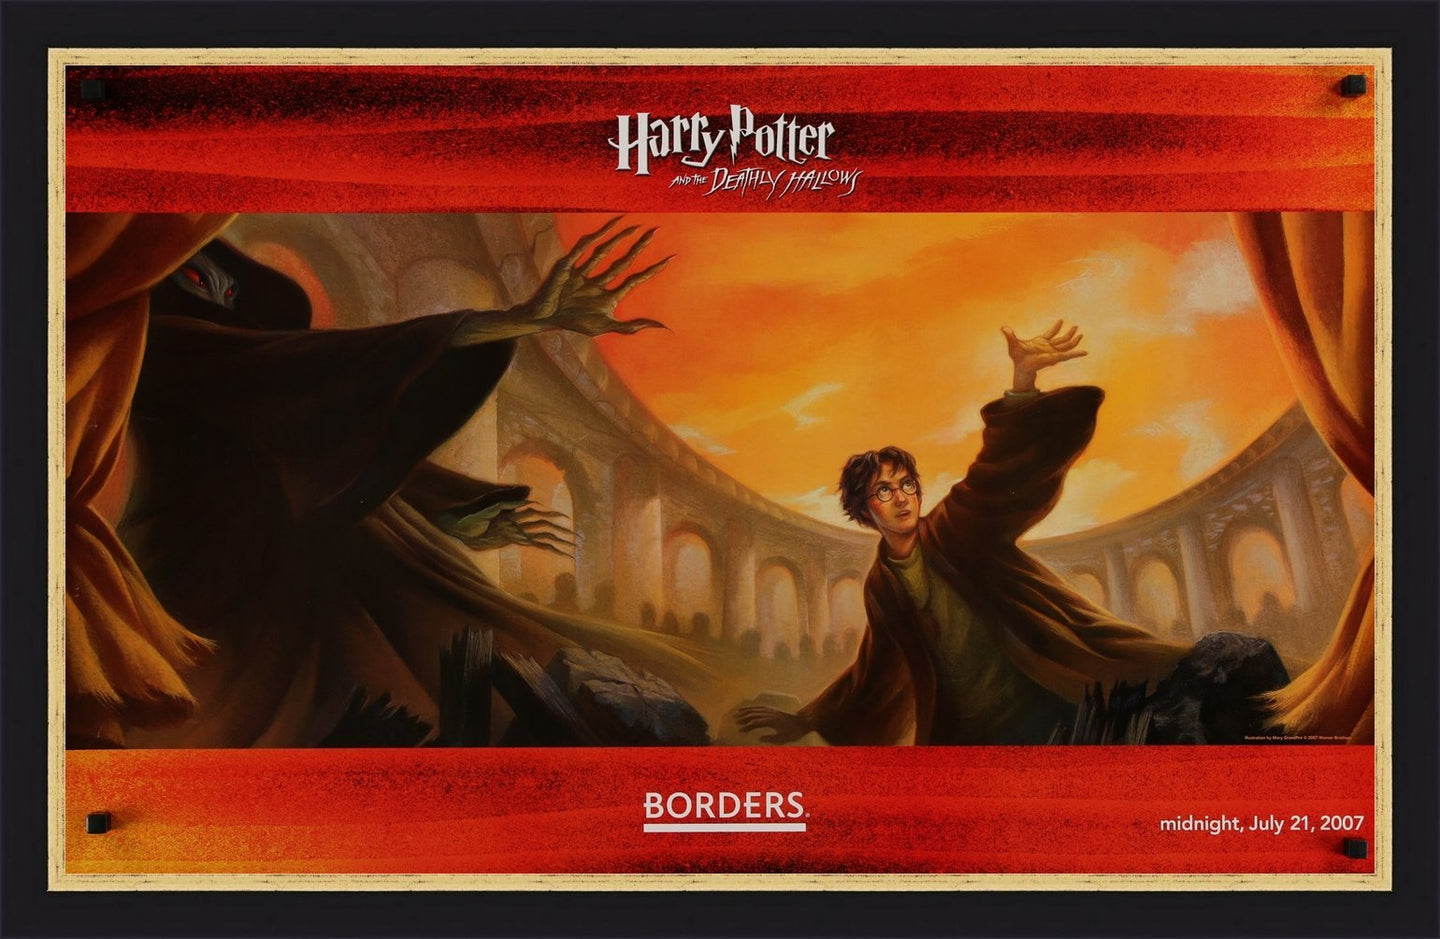 An original poster for the publication of Harry Potter and the Deathly Hallows